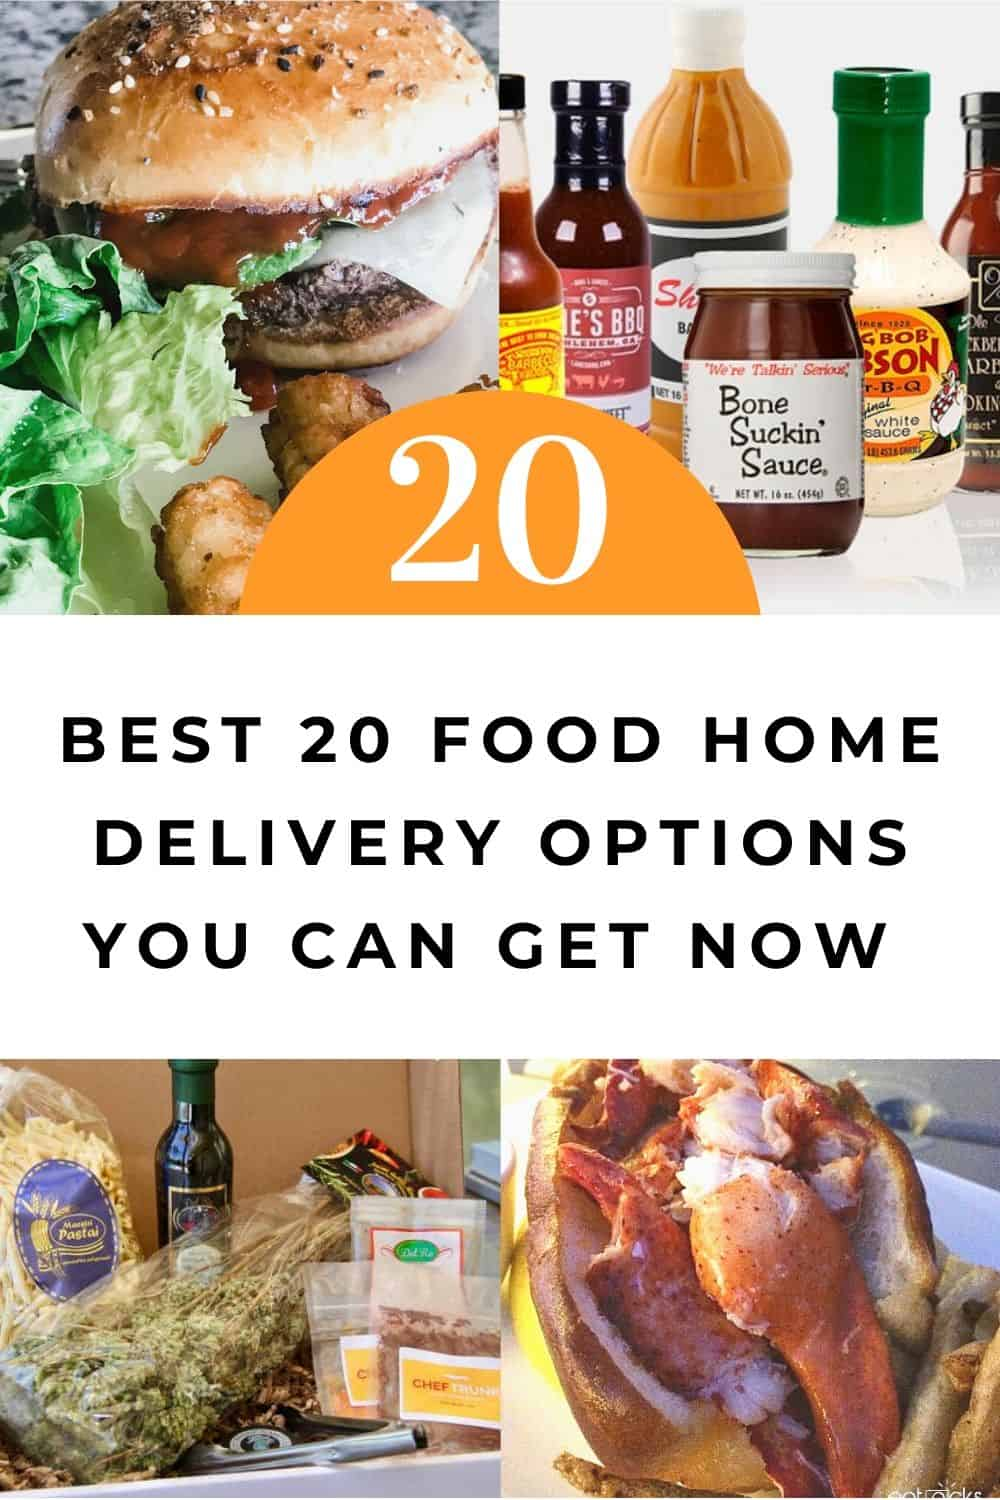 20 food home delivery options to get now